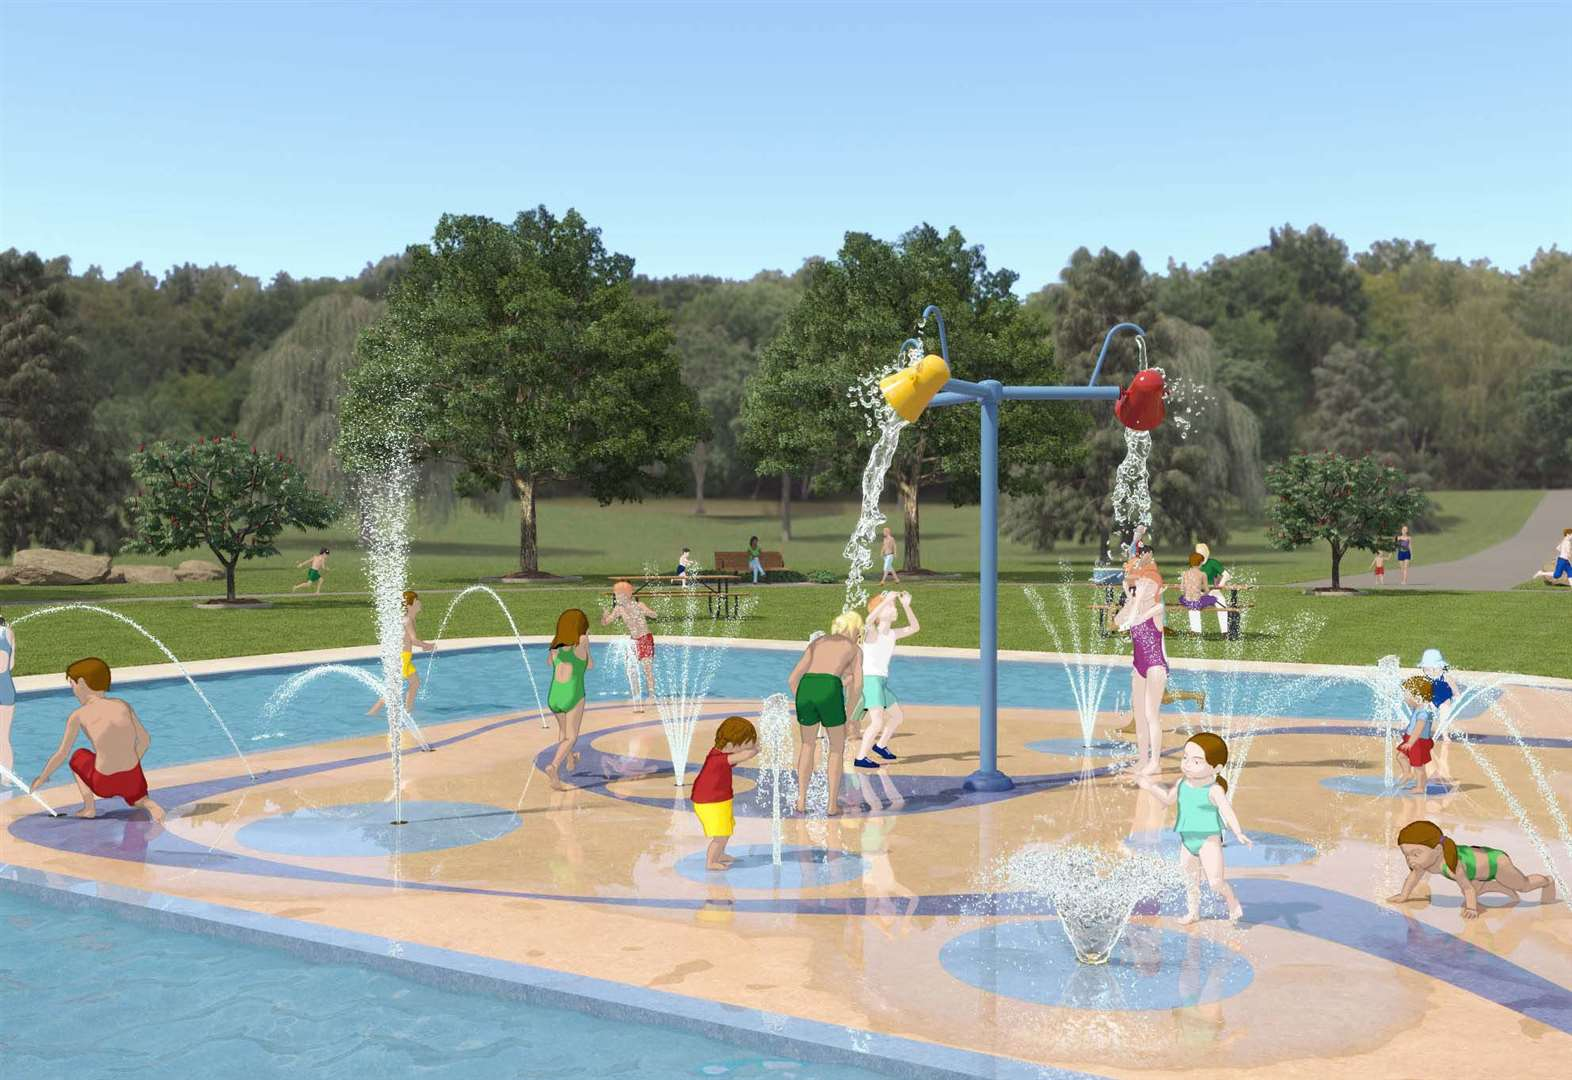 New splash pad for park